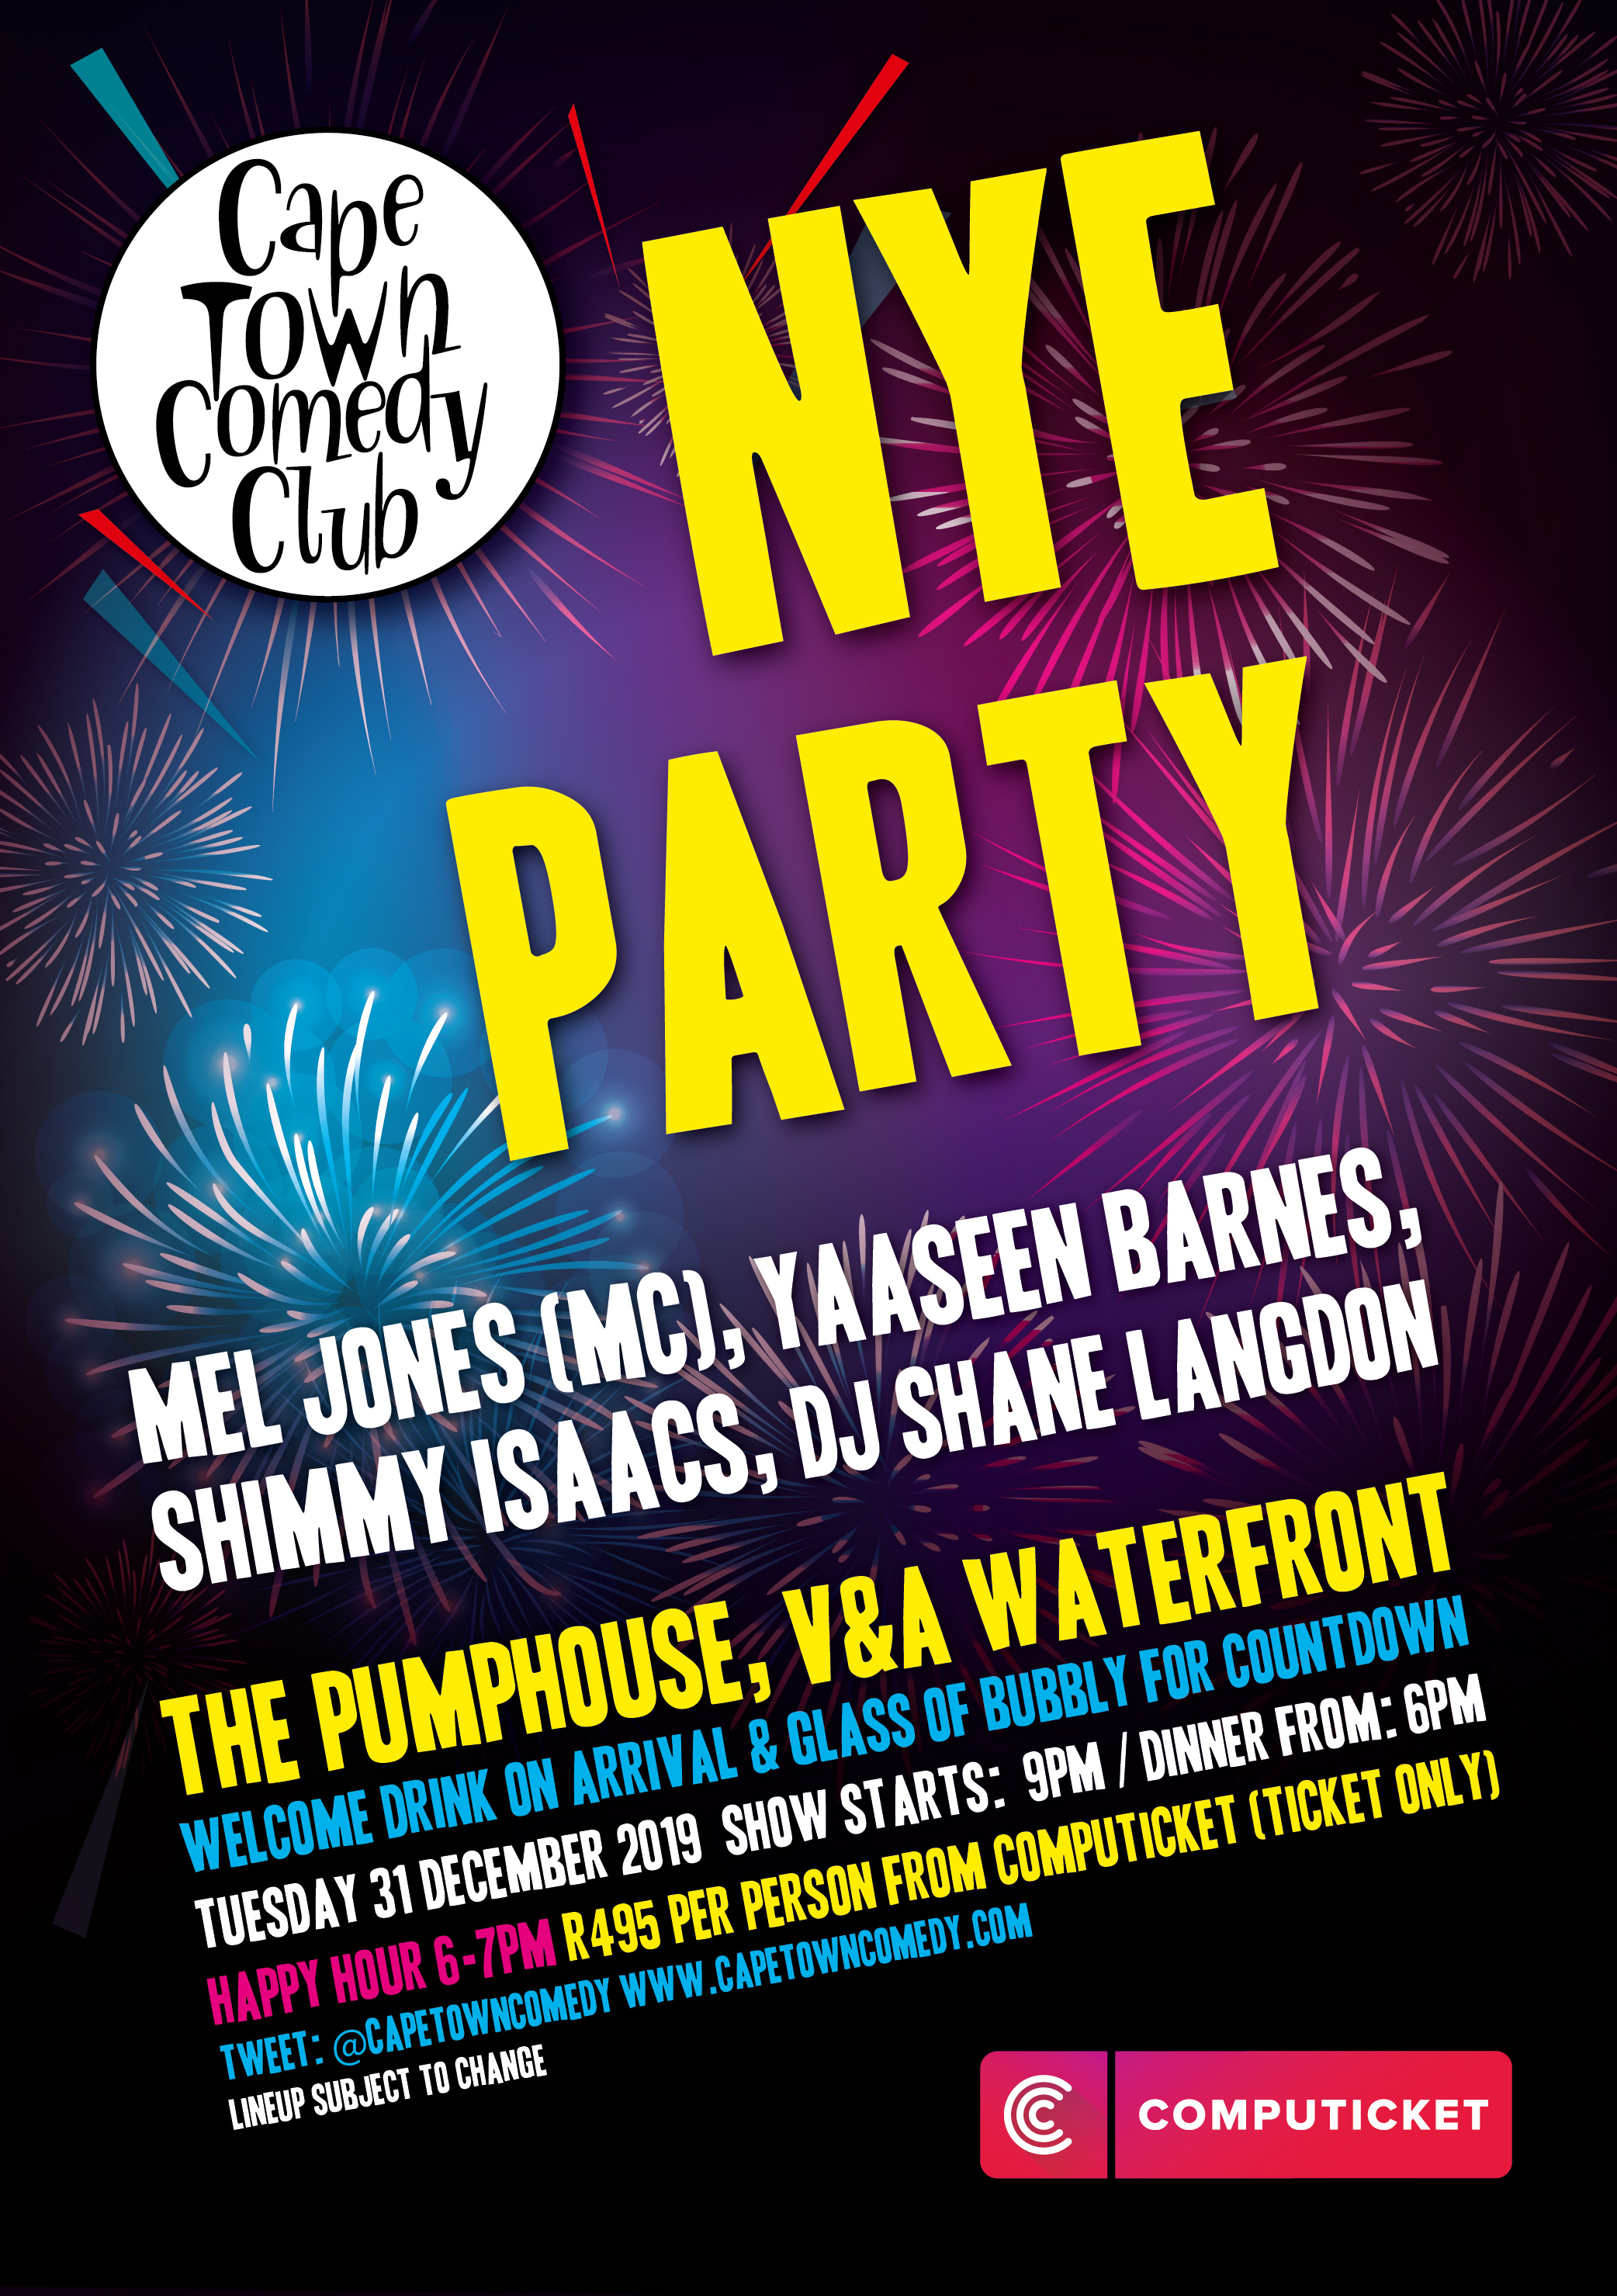 Cape Town Comedy Club - New Year's Eve Party